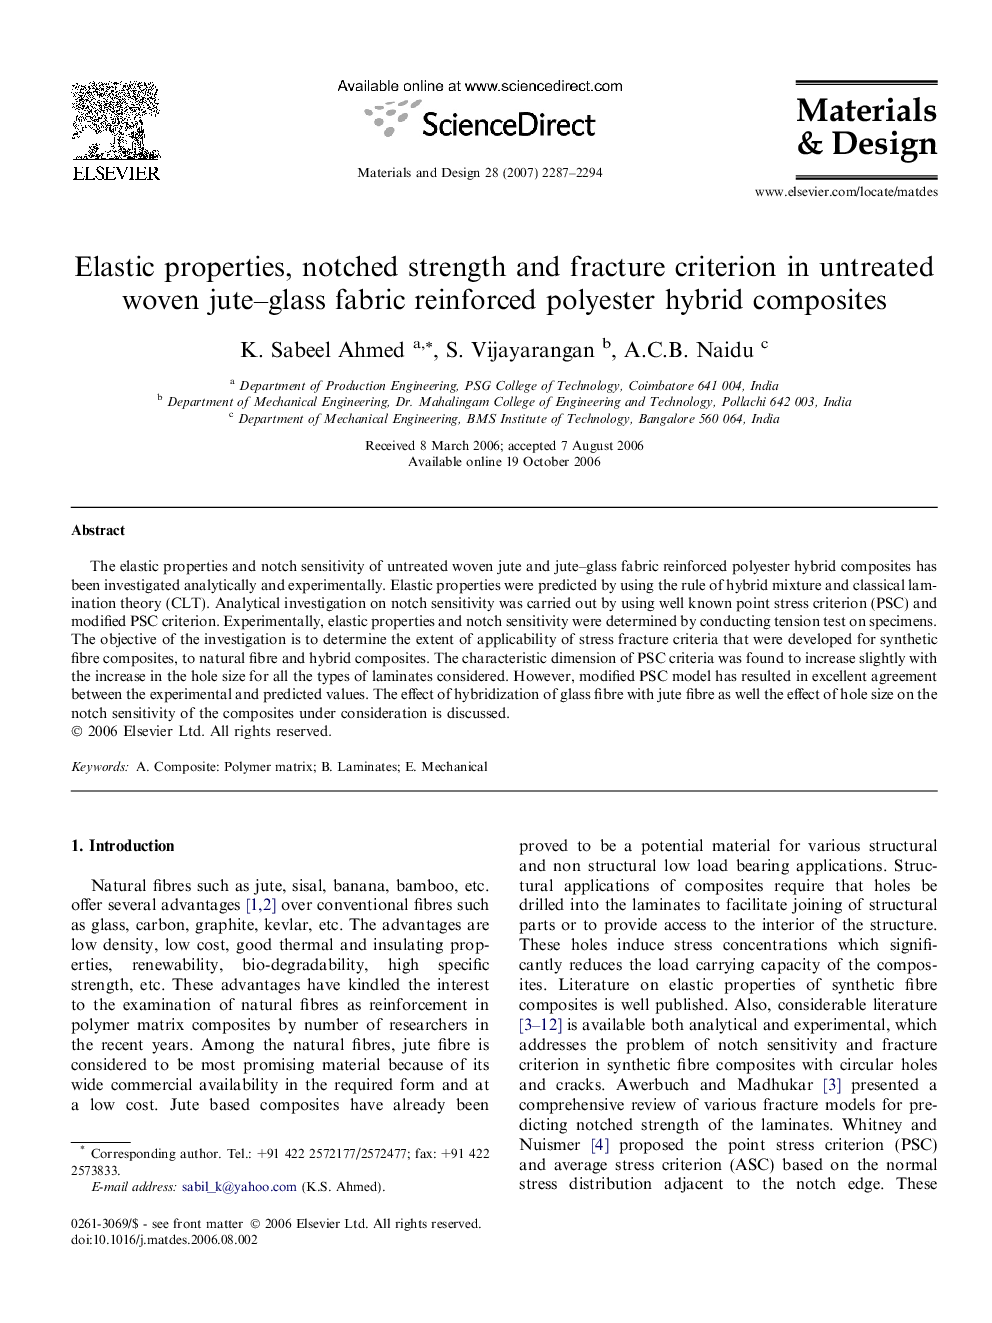 Elastic properties, notched strength and fracture criterion in untreated woven jute–glass fabric reinforced polyester hybrid composites